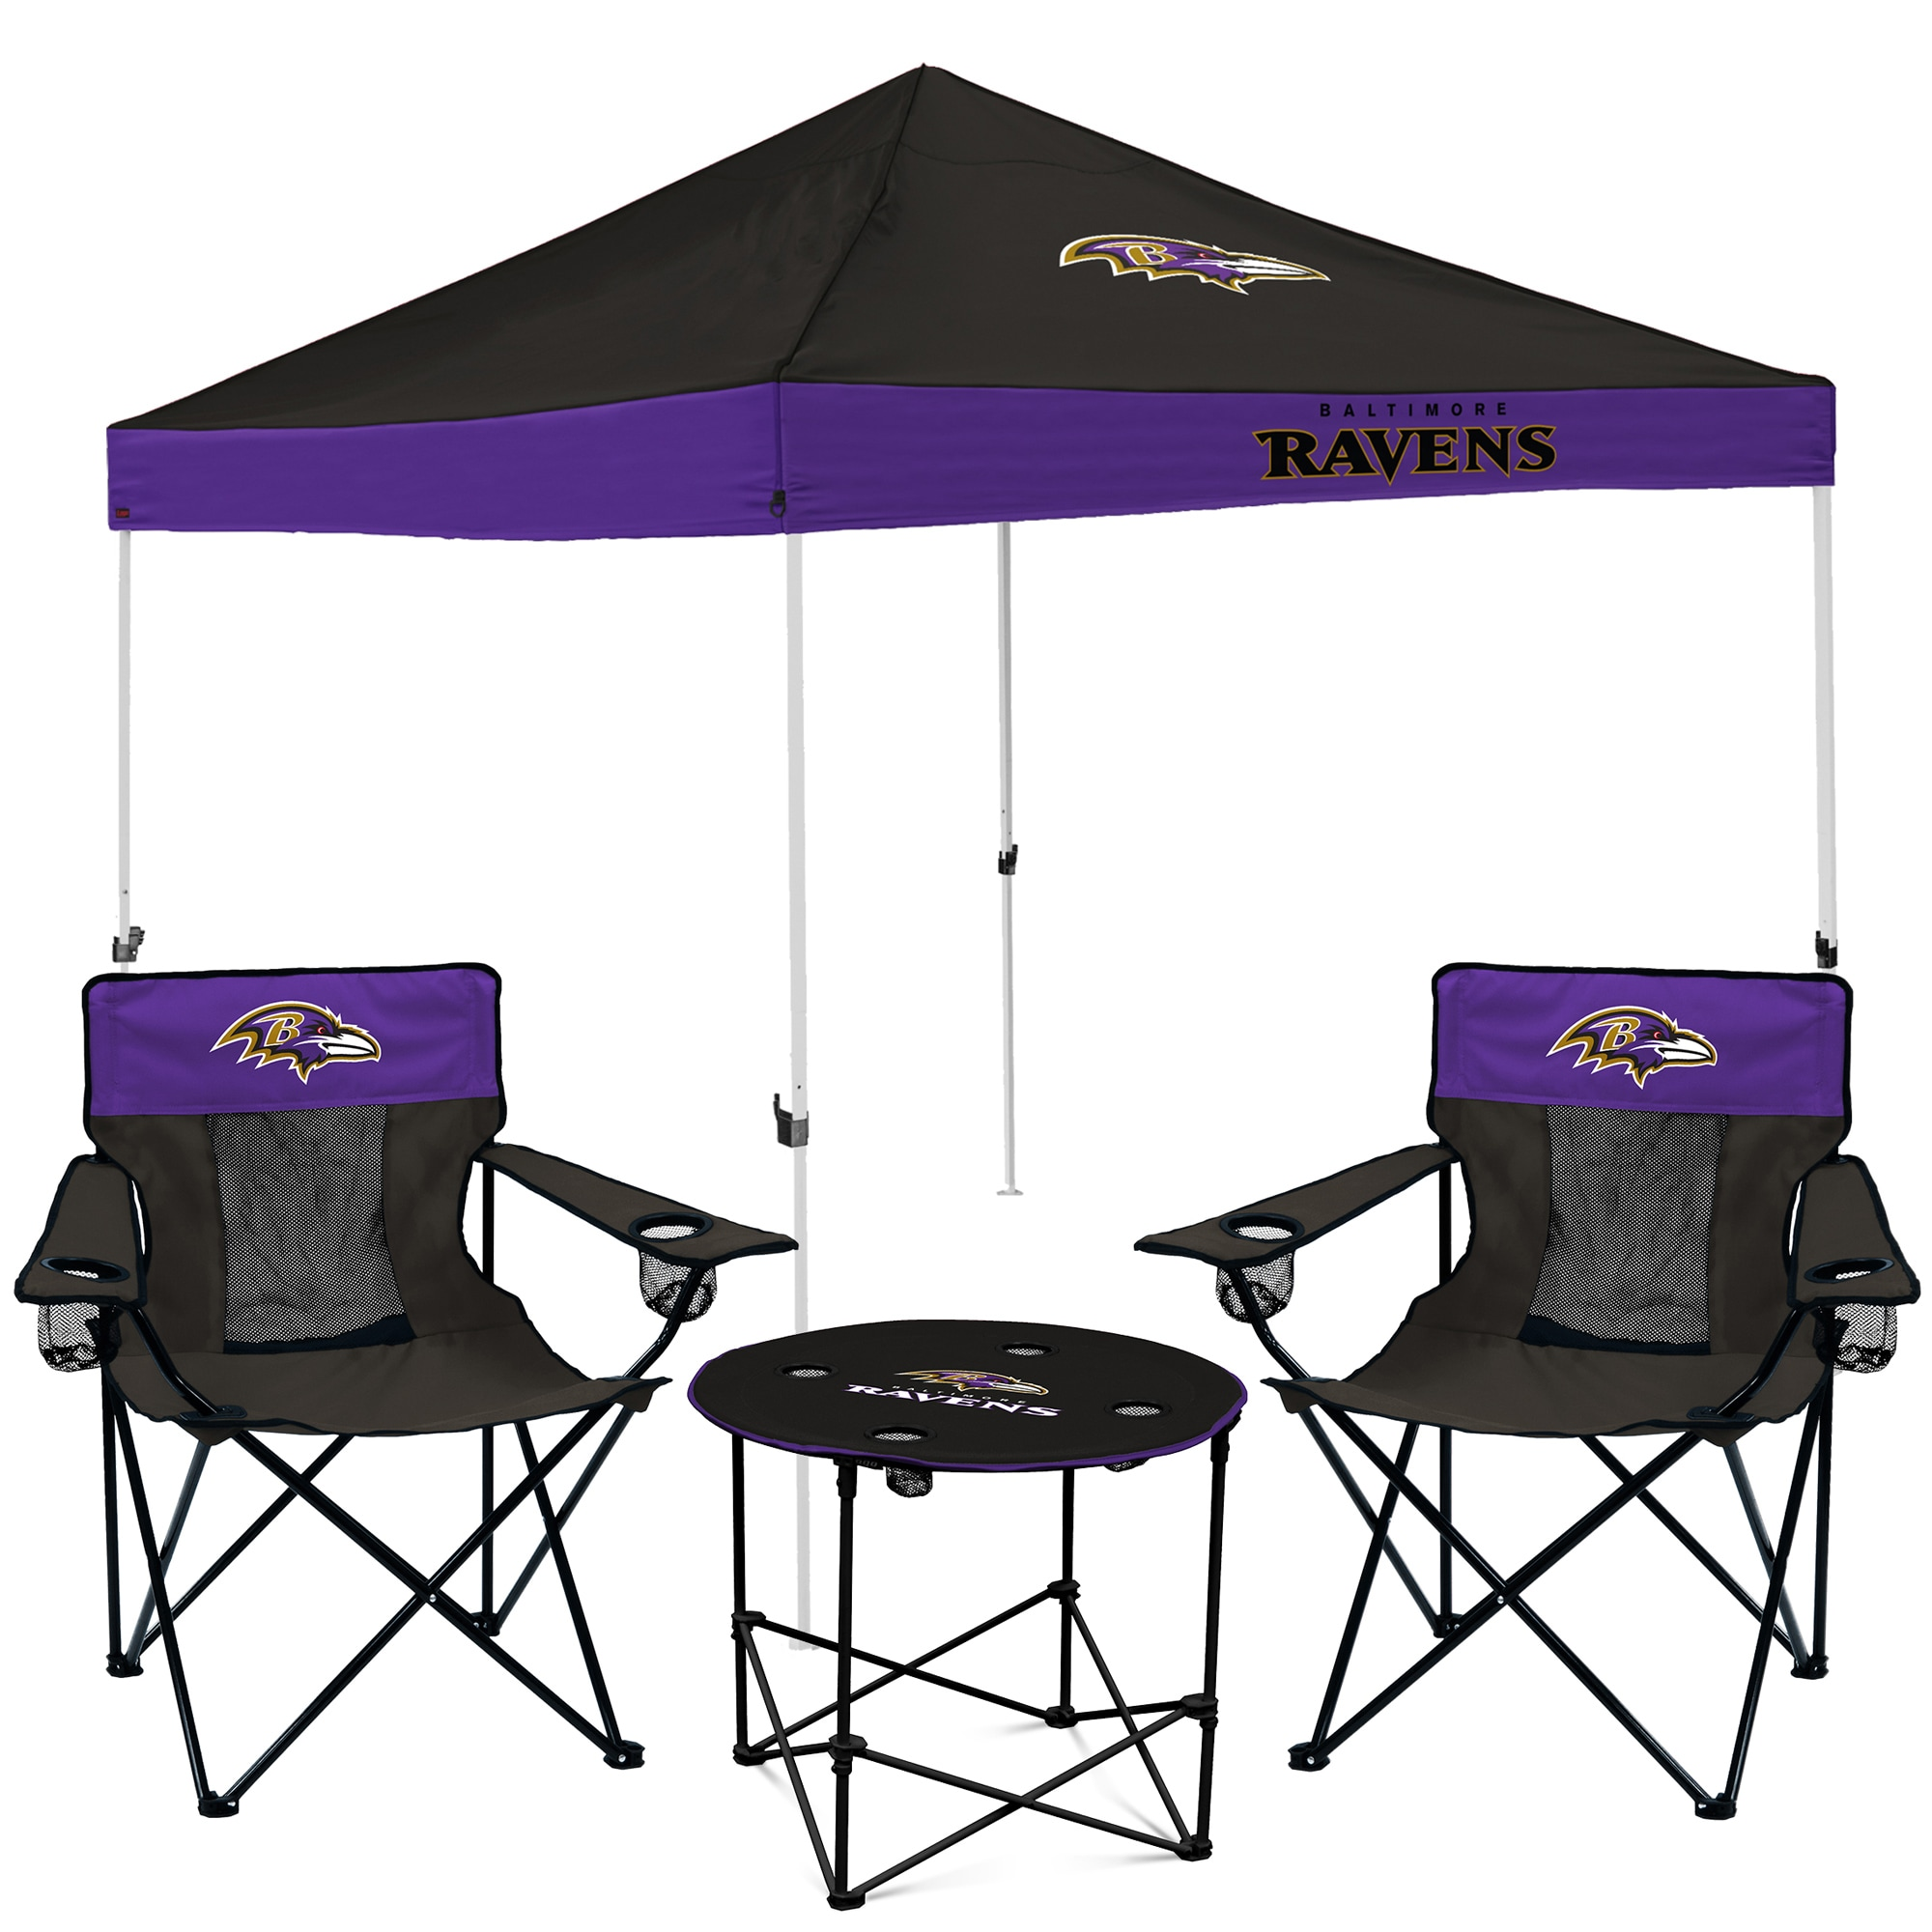 Baltimore Ravens Tailgate Canopy Tent, Table, & Chairs Set